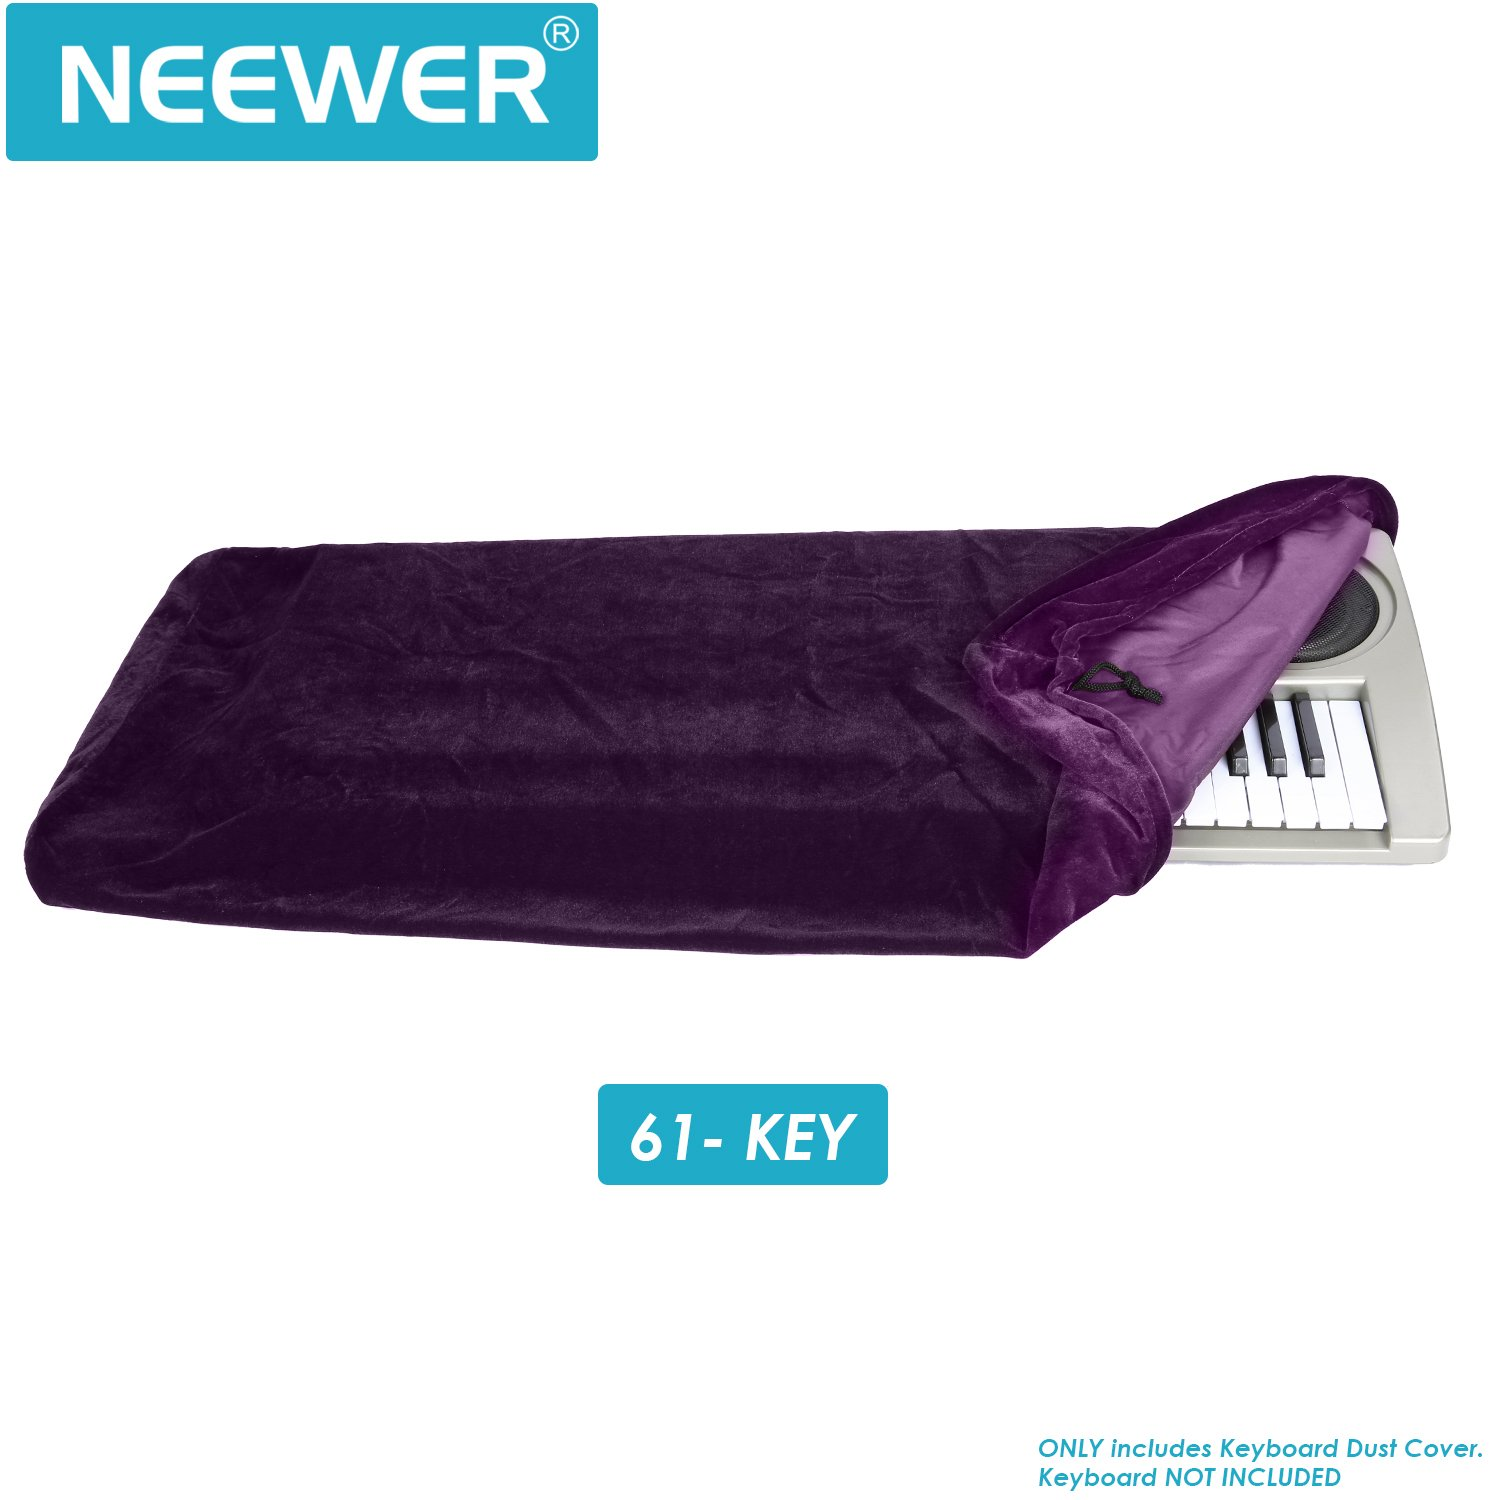 Neewer%C2%AE Keyboard Cover Keyboards Dimension Image 2